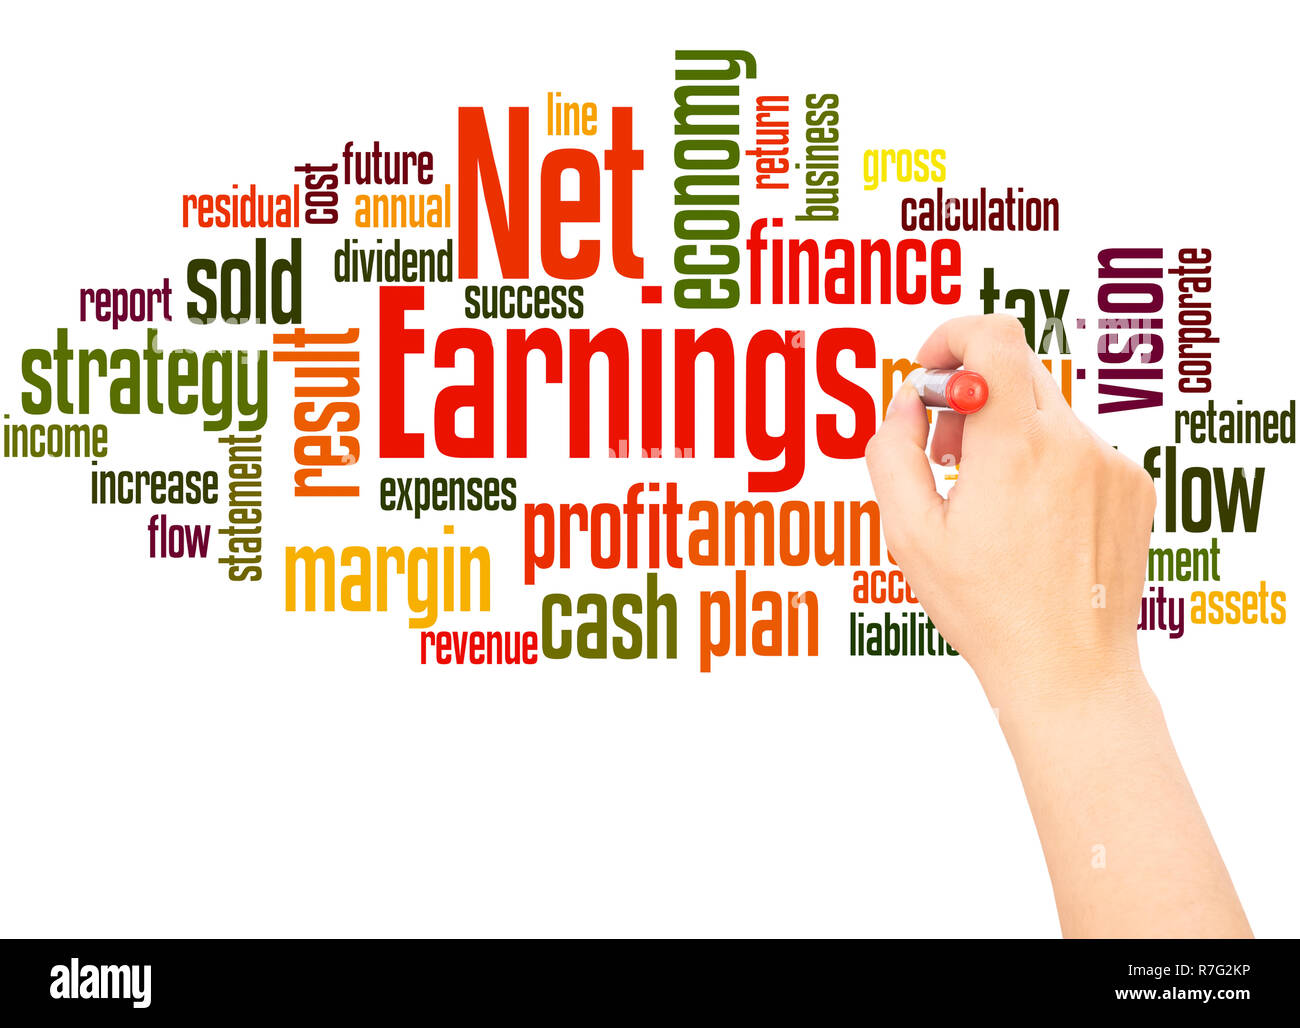 Retained Earnings Stock Photos & Retained Earnings Stock